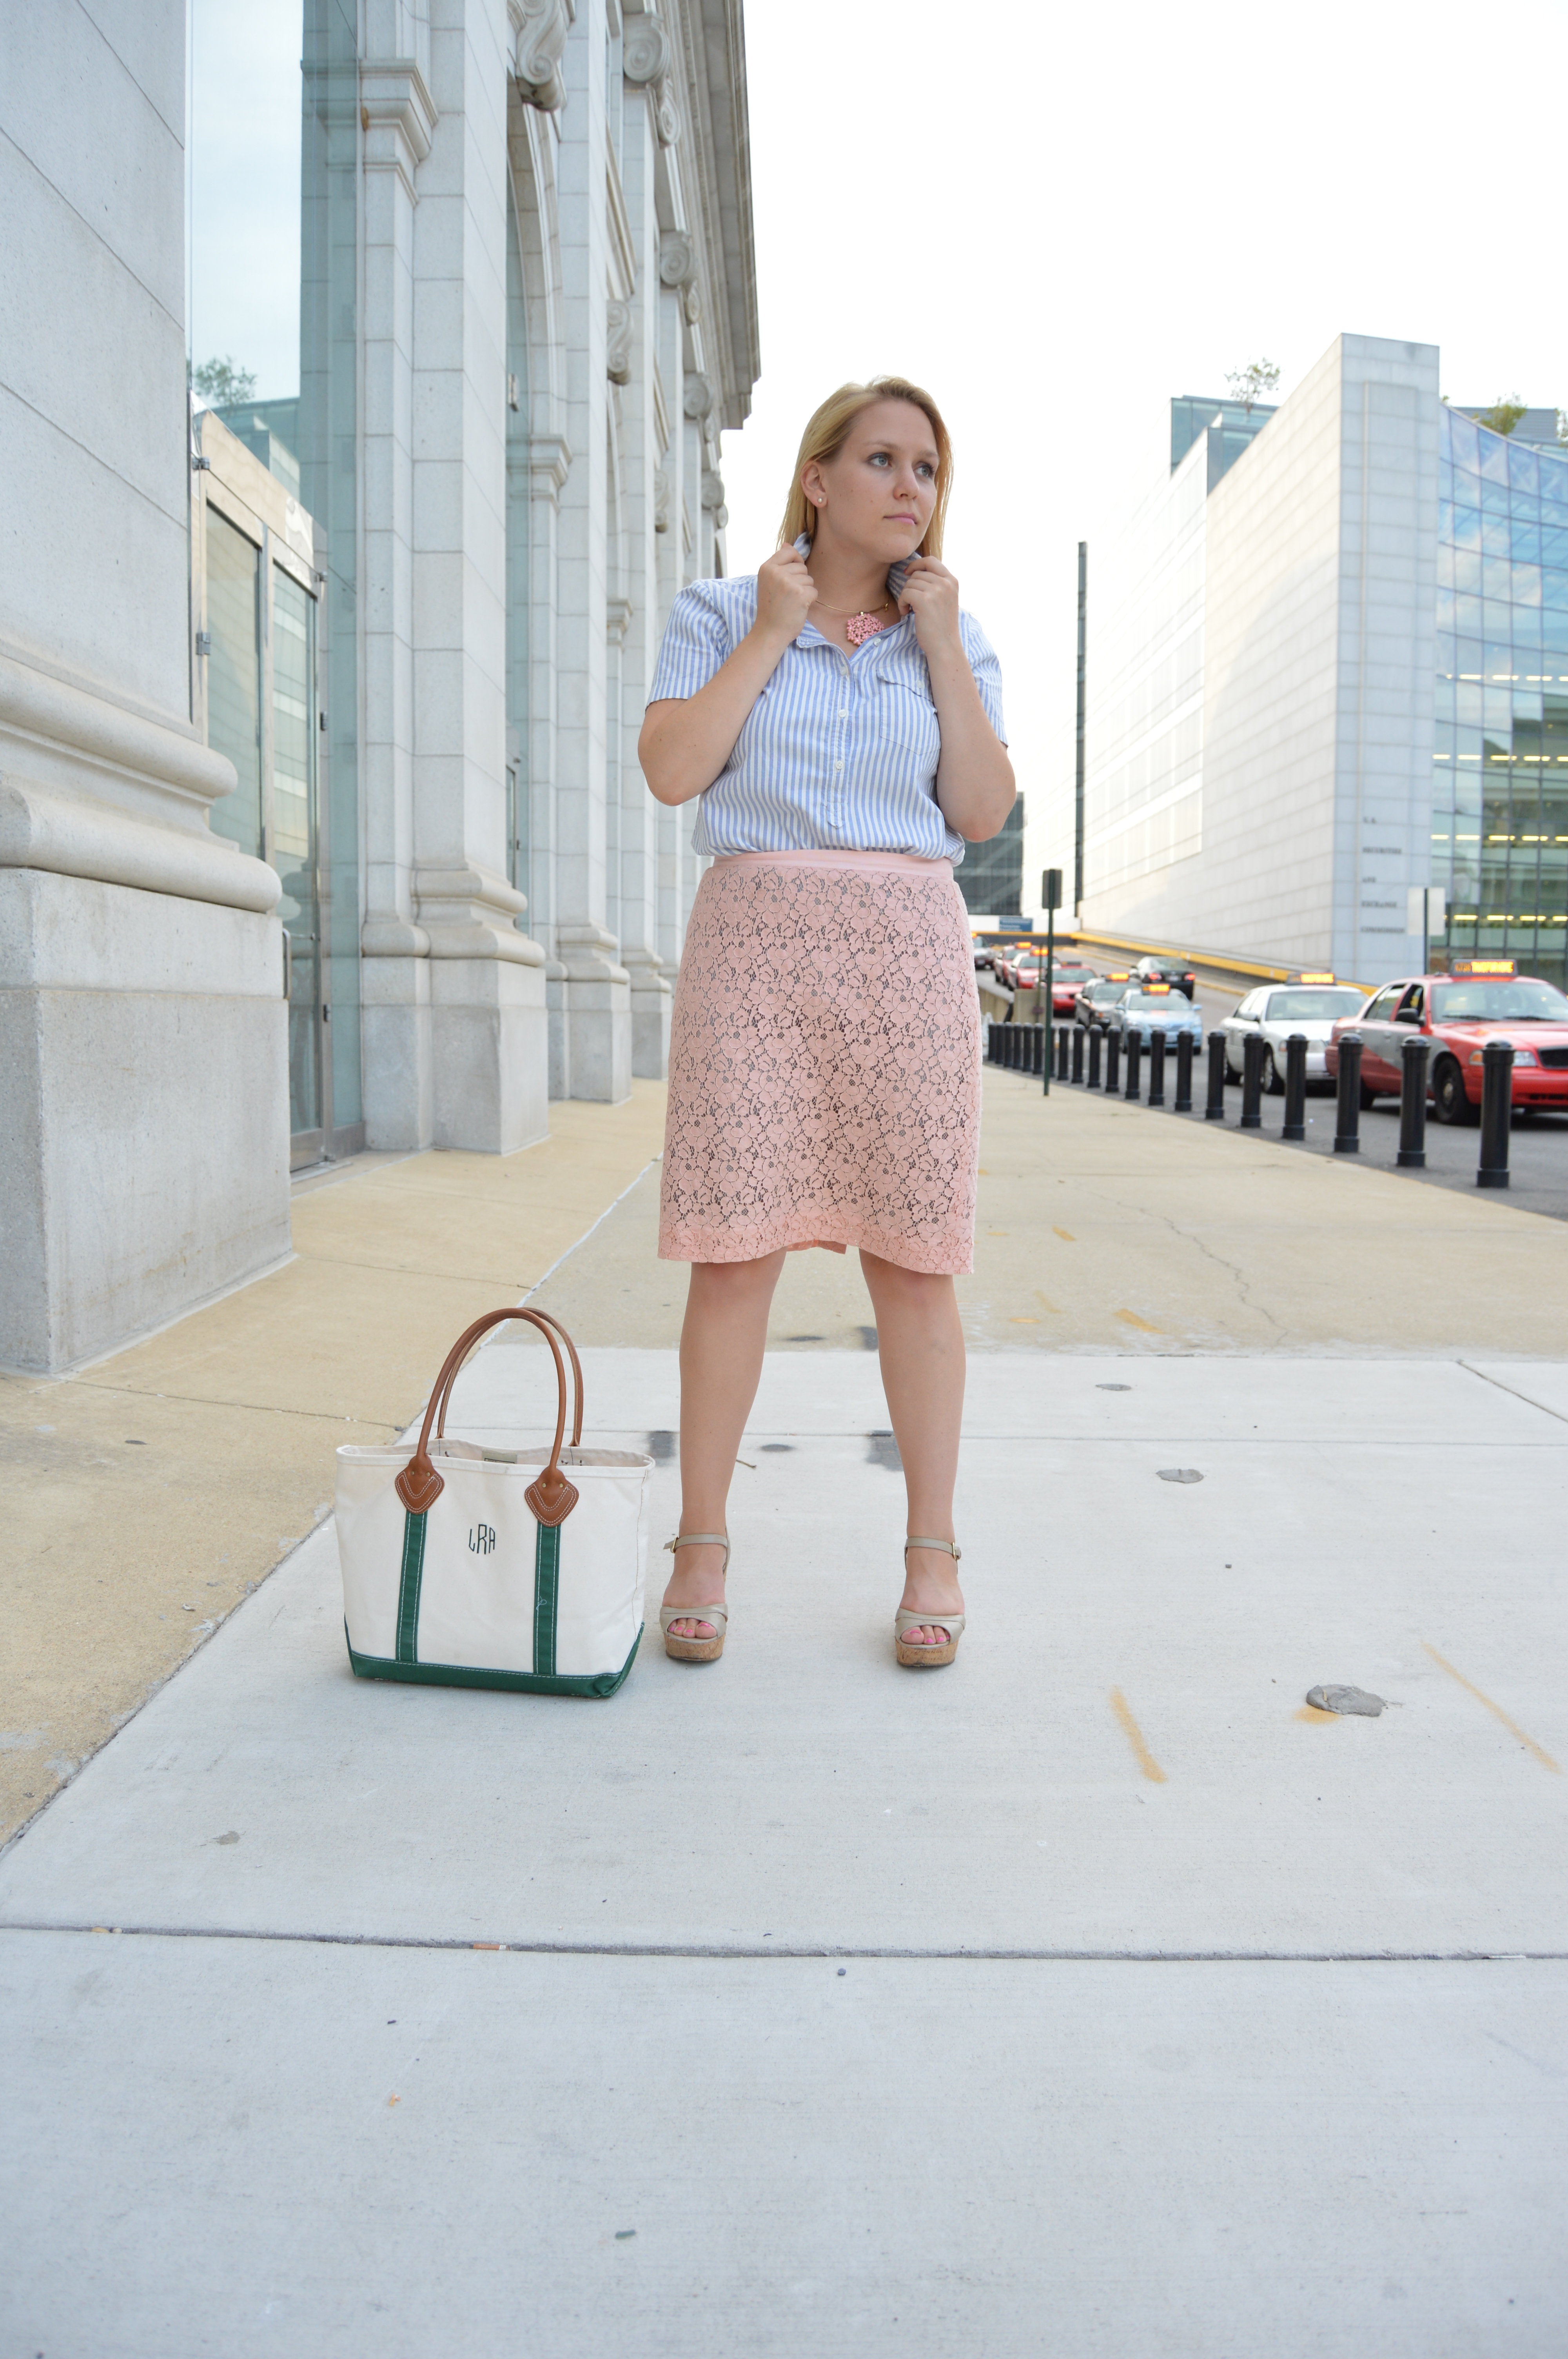 How To Mix Prints For Work - DC Girl in Pearls